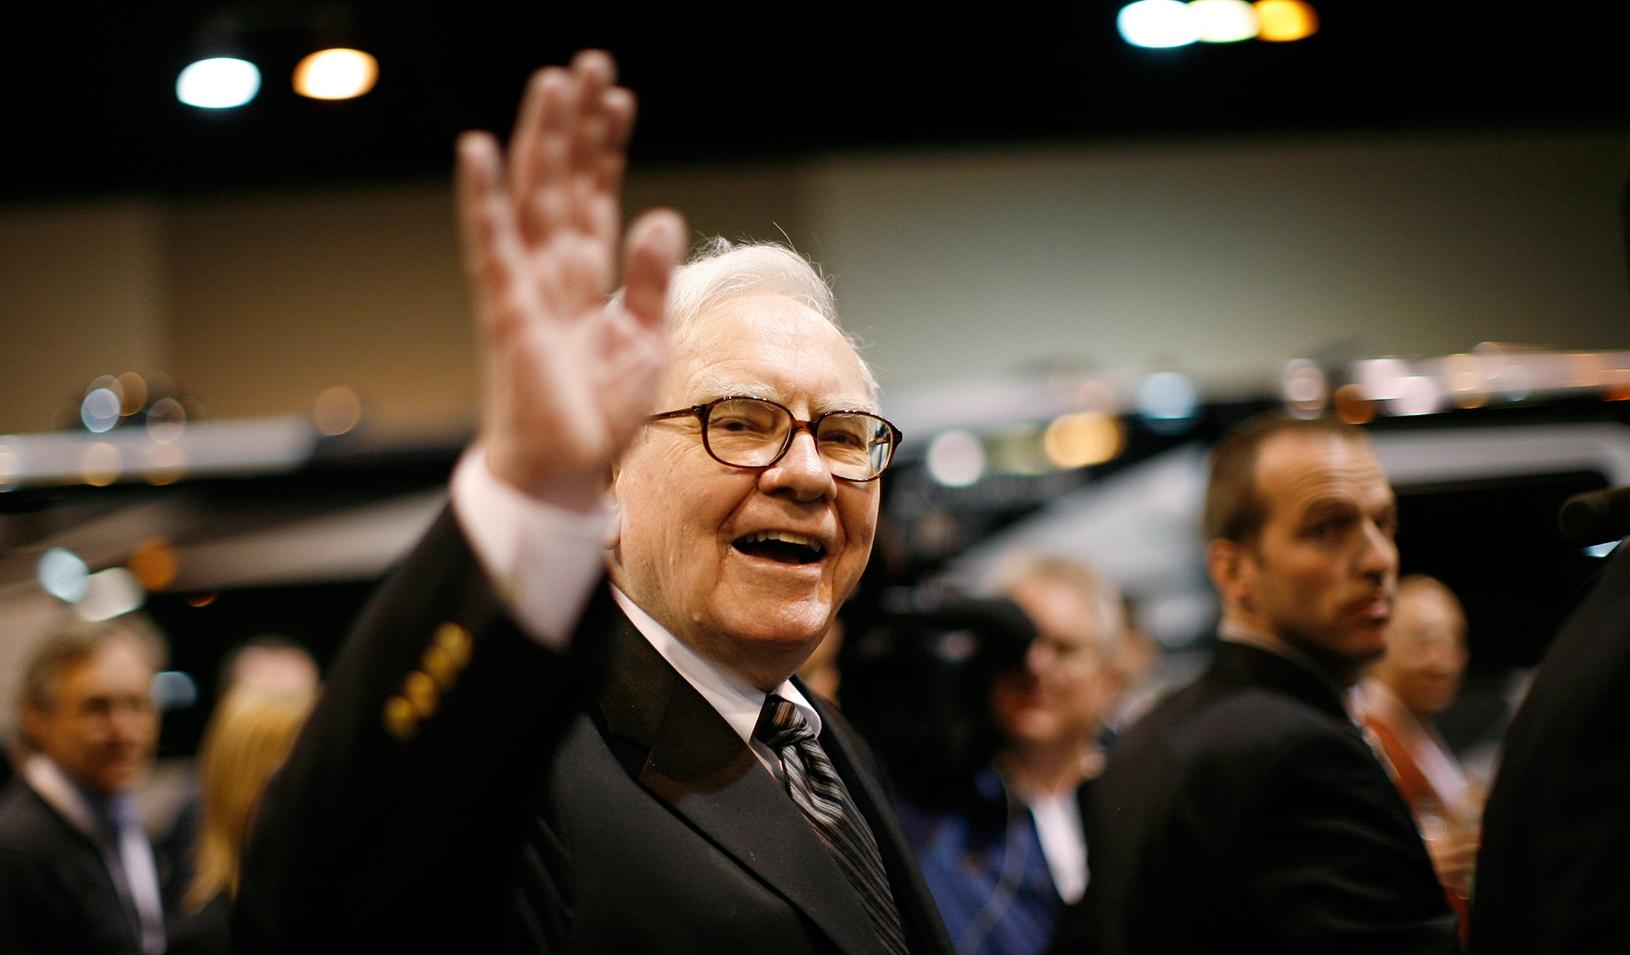 Buffett: Cryptocurrencies are headed for a 'dangerous ending'